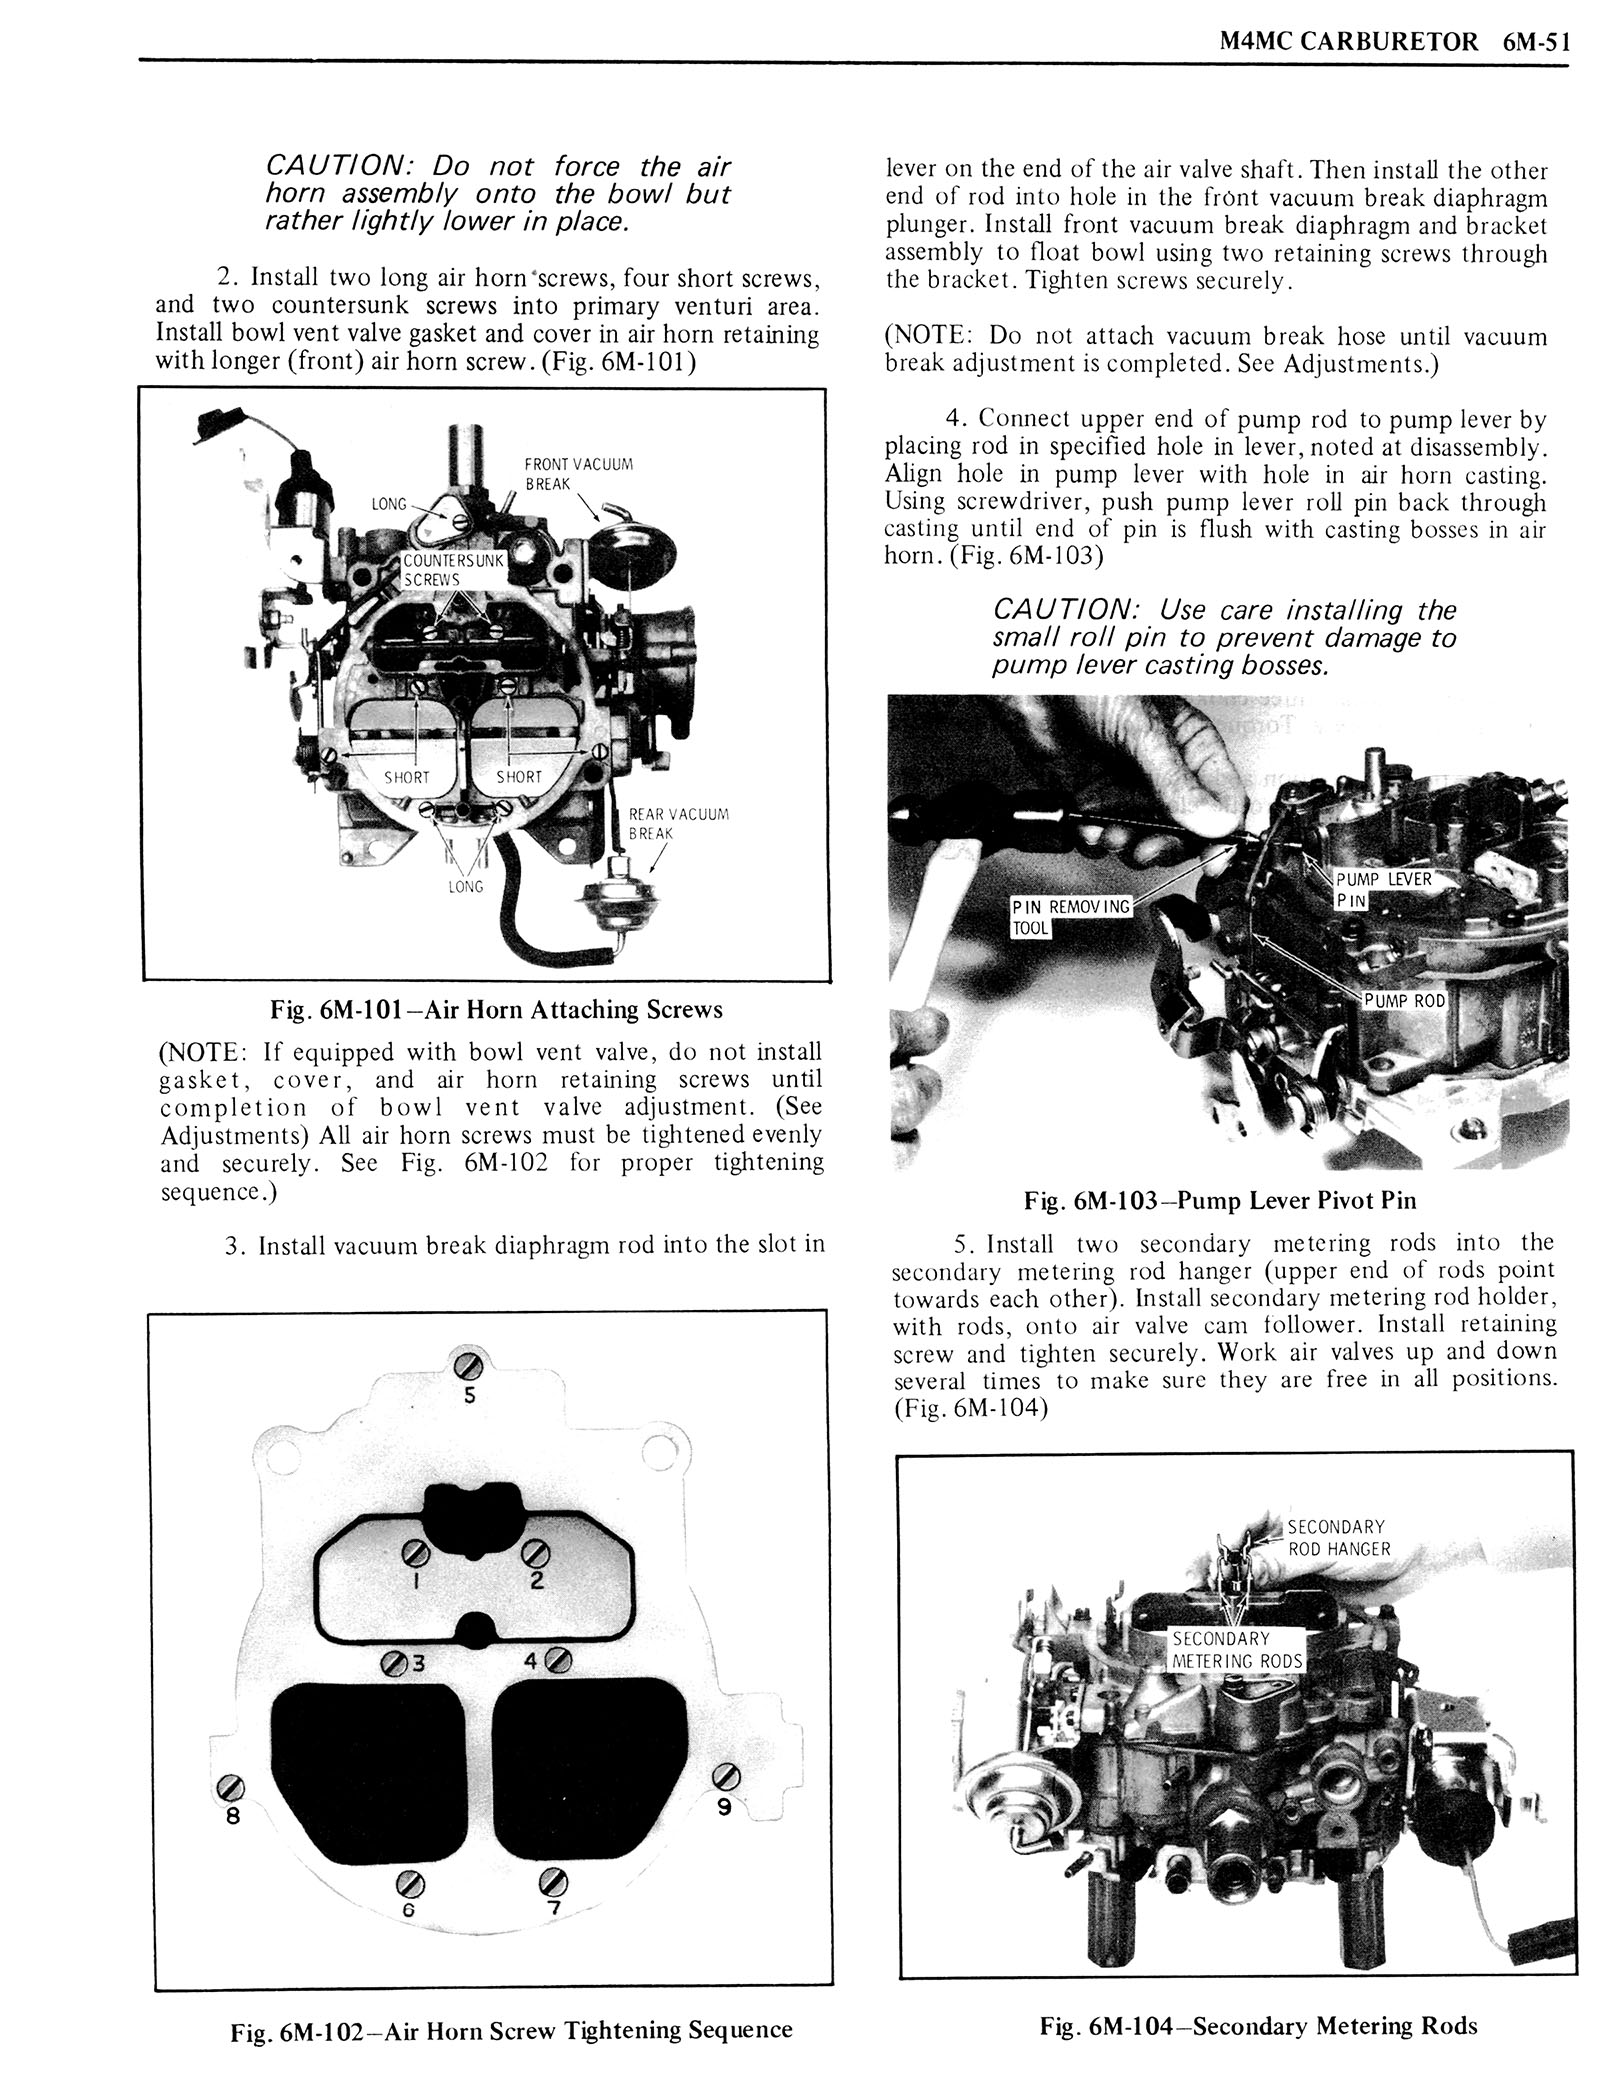 1976 Oldsmobile Service Manual page 605 of 1390